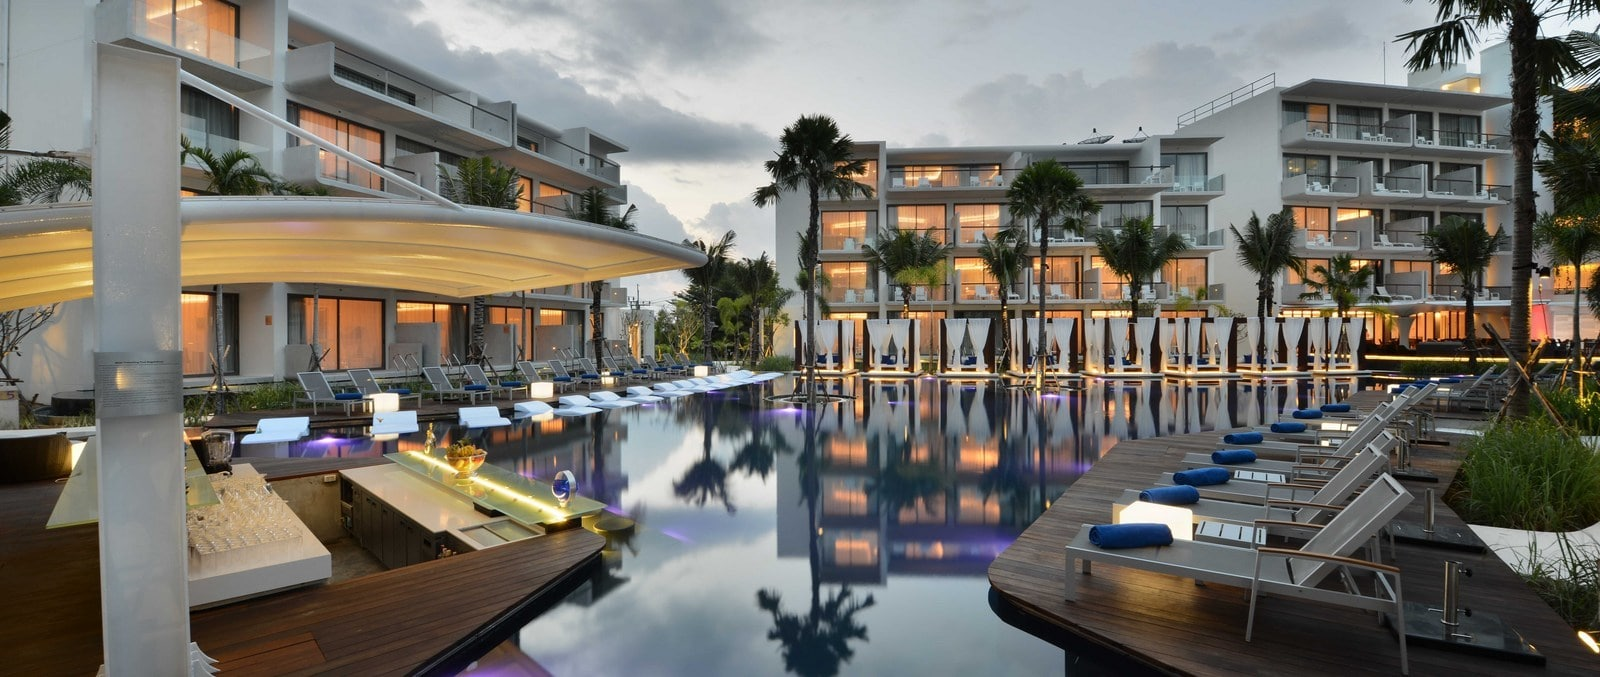 Phuket hotel registration remains a challenge | The Thaiger